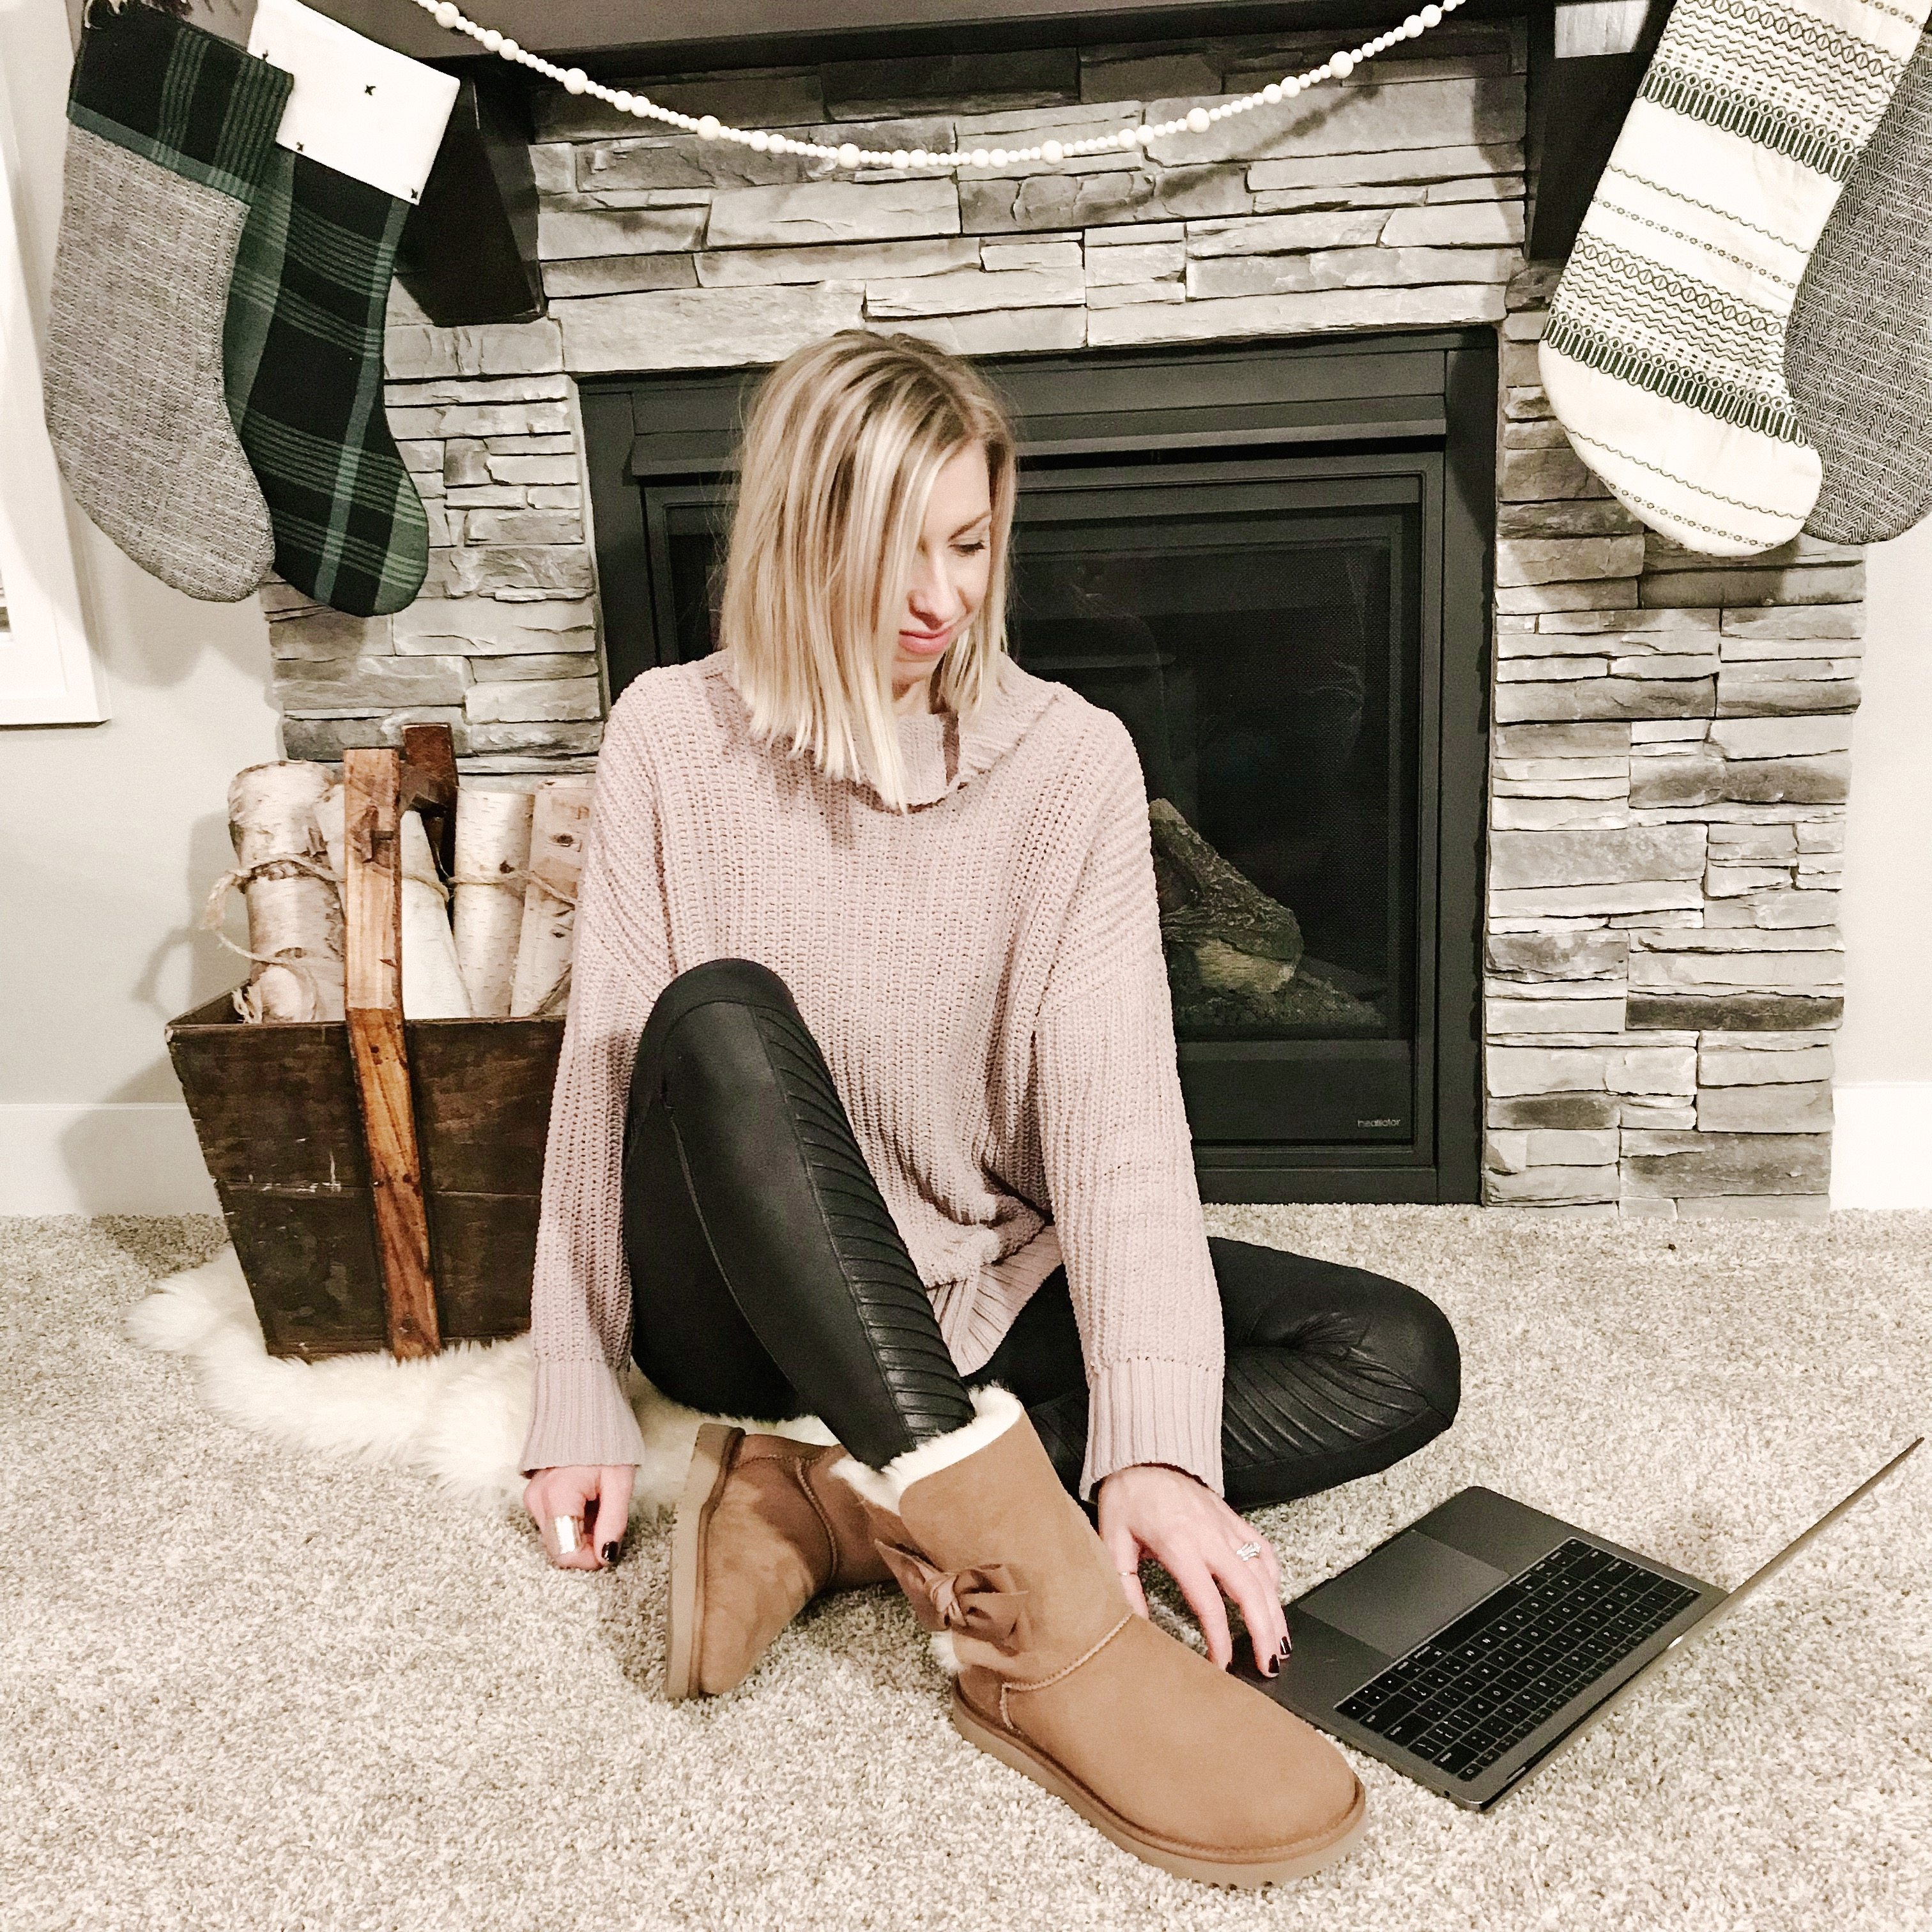 5331a67a0eab Now is a great the time to score some good deals on winter wardrobe  essentials